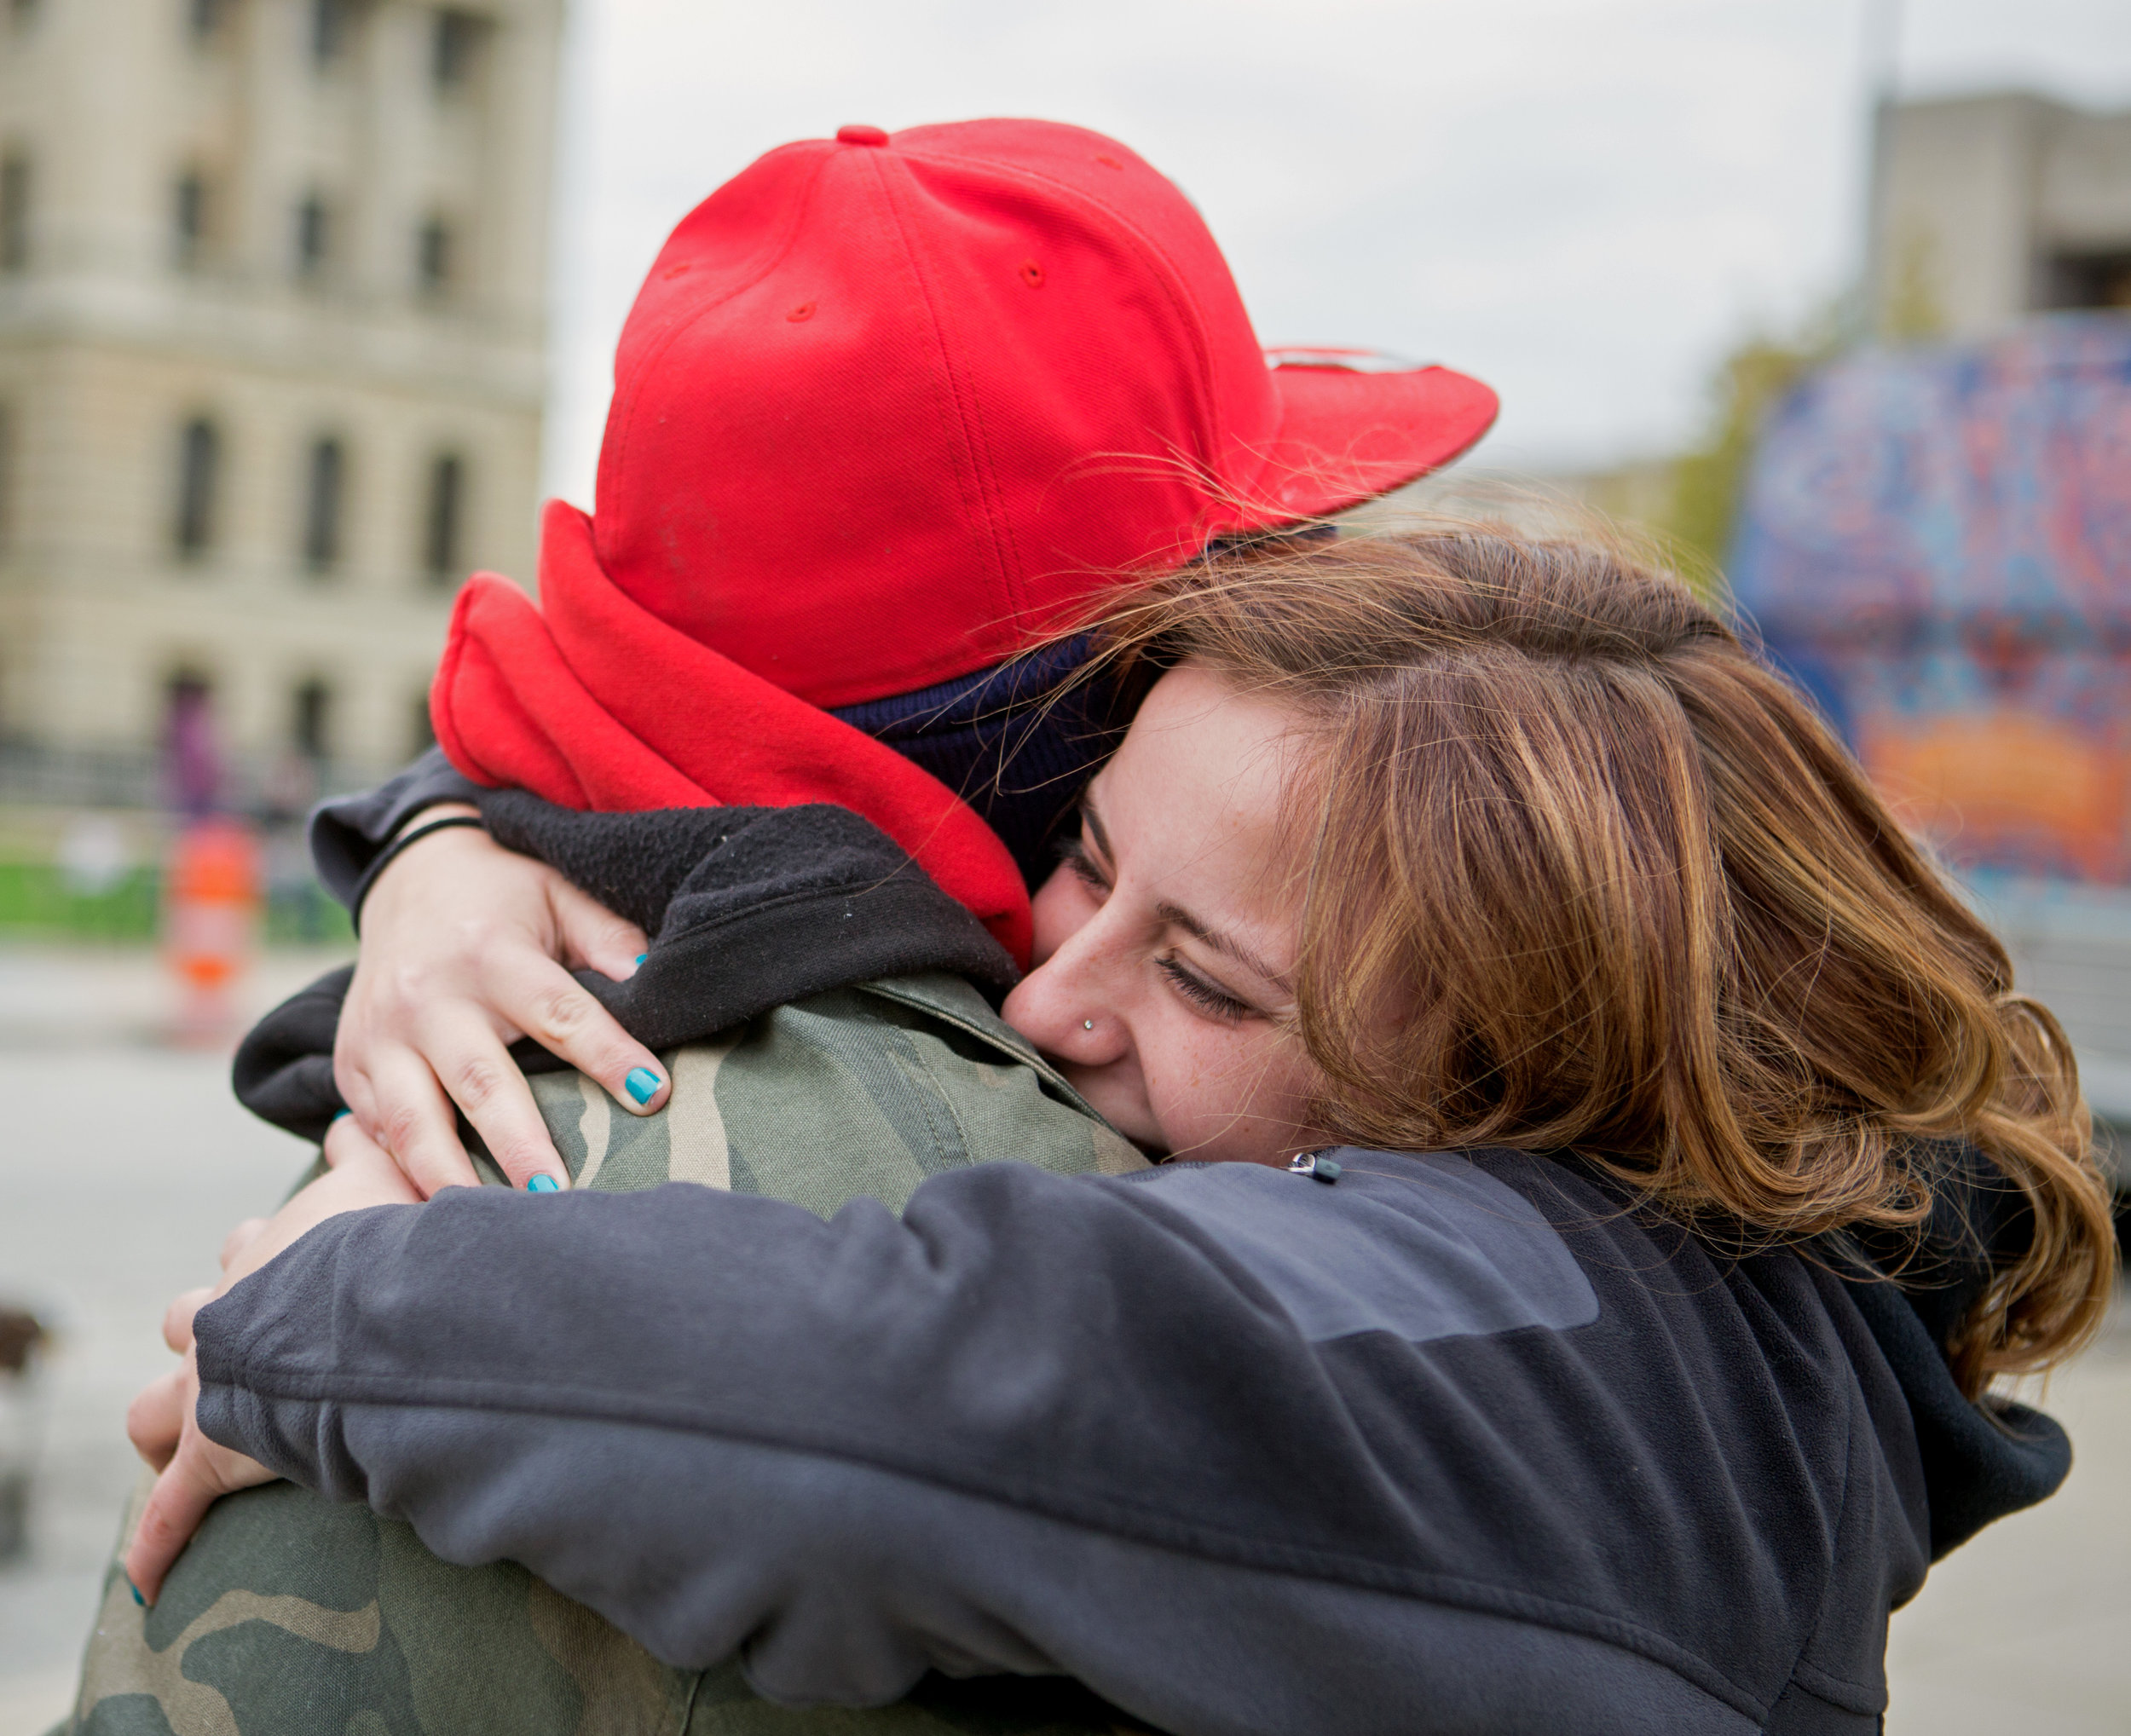 Former Tent City mayor Selena Green hugs clothing tent volunteer Terrance Burch before the start of  Tent City at Civic Center Mall in Downtown Toledo on Friday, Oct. 21, 2016.